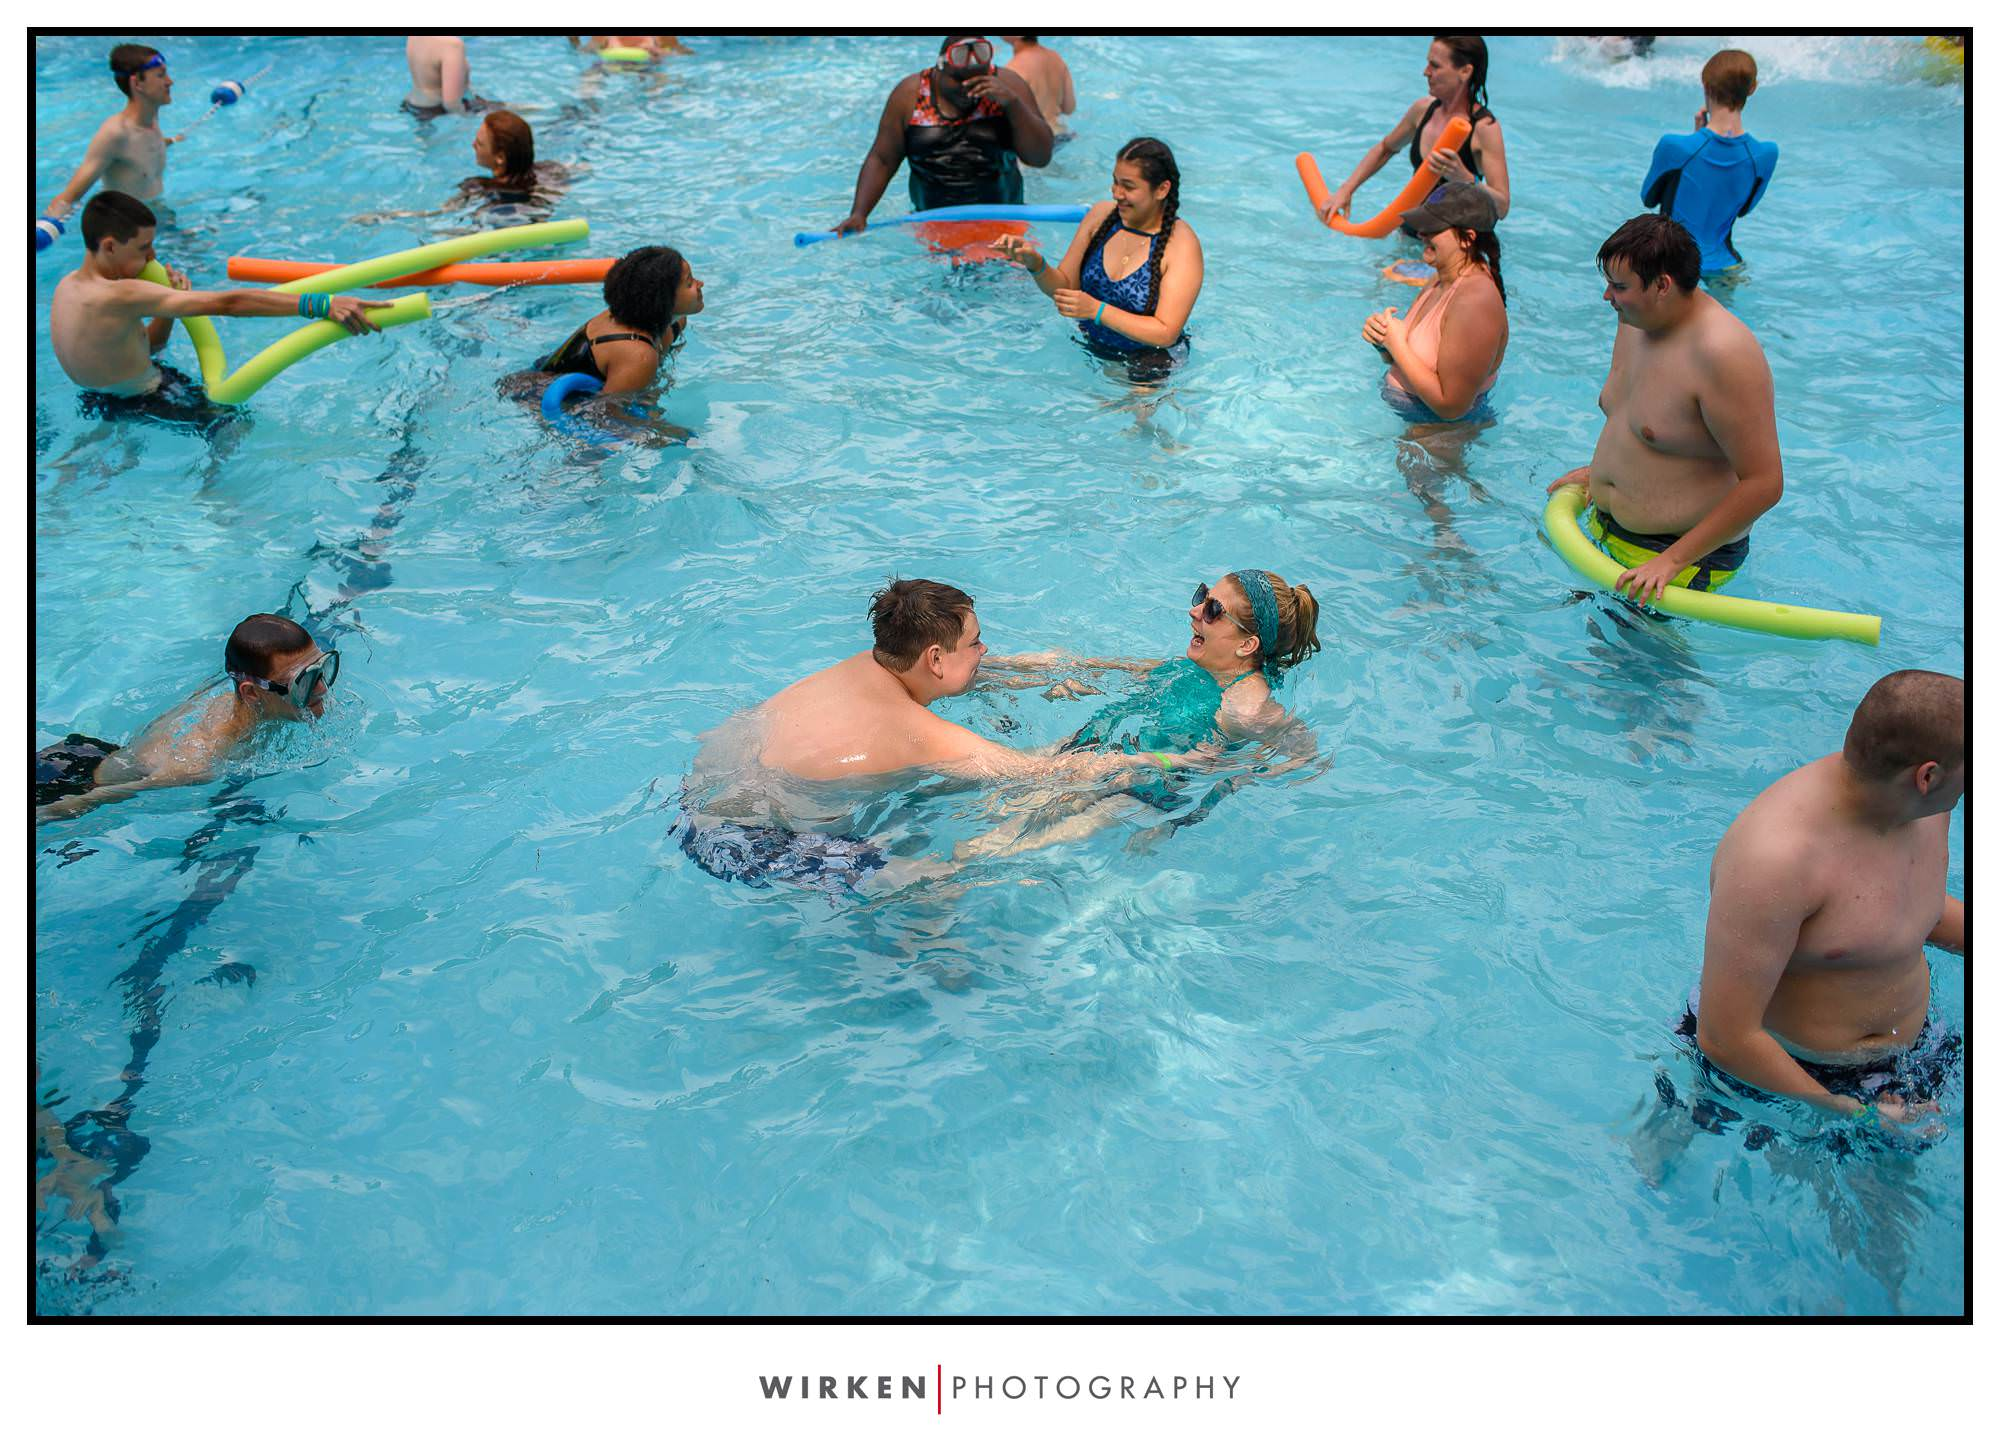 Camp Encourage autism spectrum disorder summer camp swimming pool